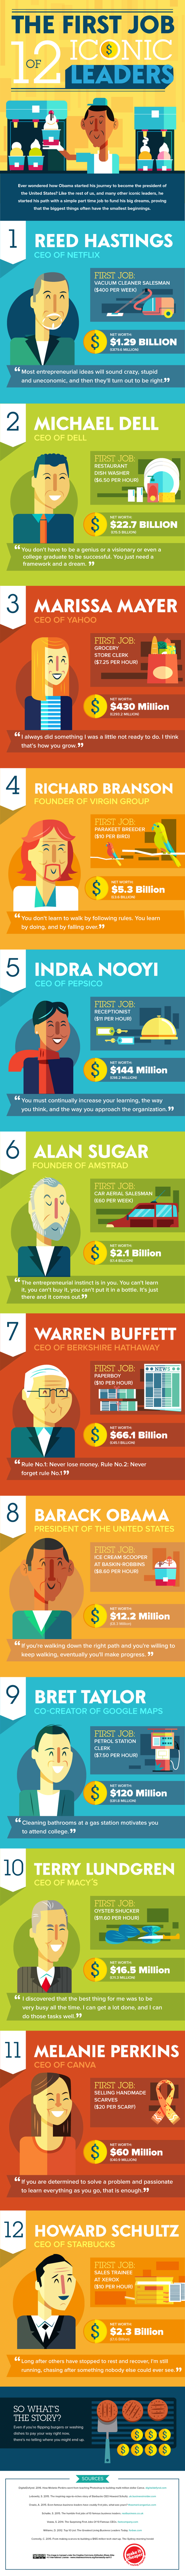 the-first-job-of-x-business-leaders-dv1